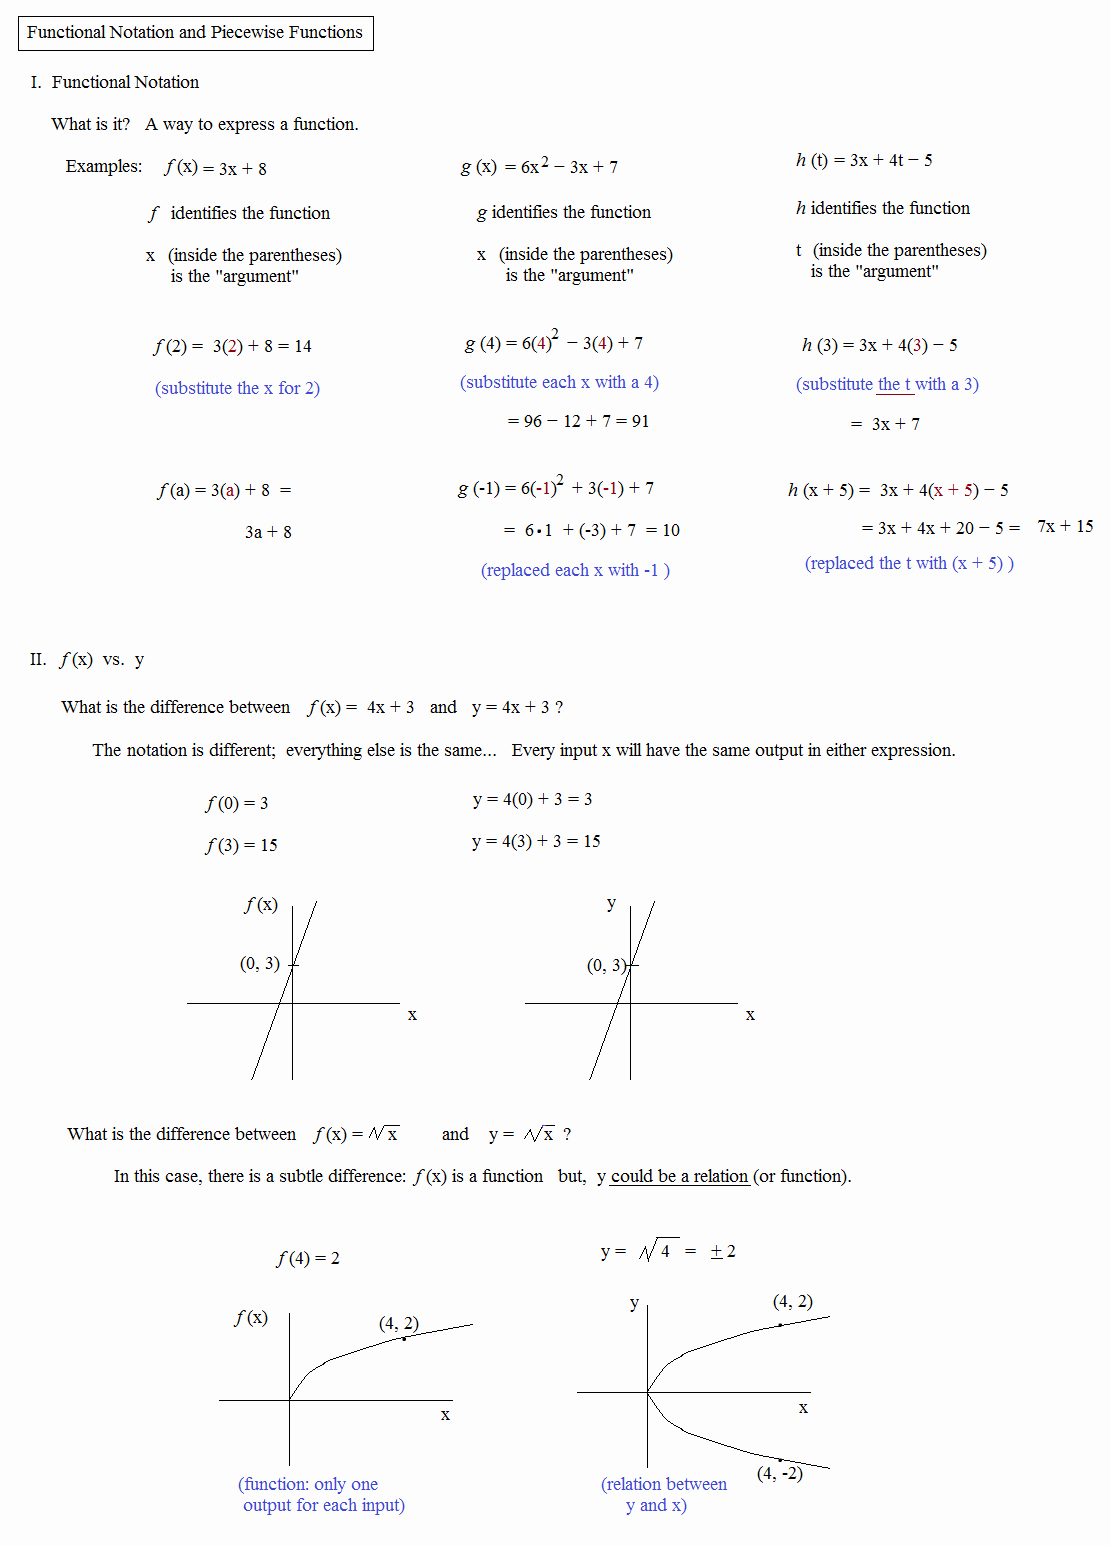 Function Notation Worksheet Answers Awesome Function Notation Worksheet Answers